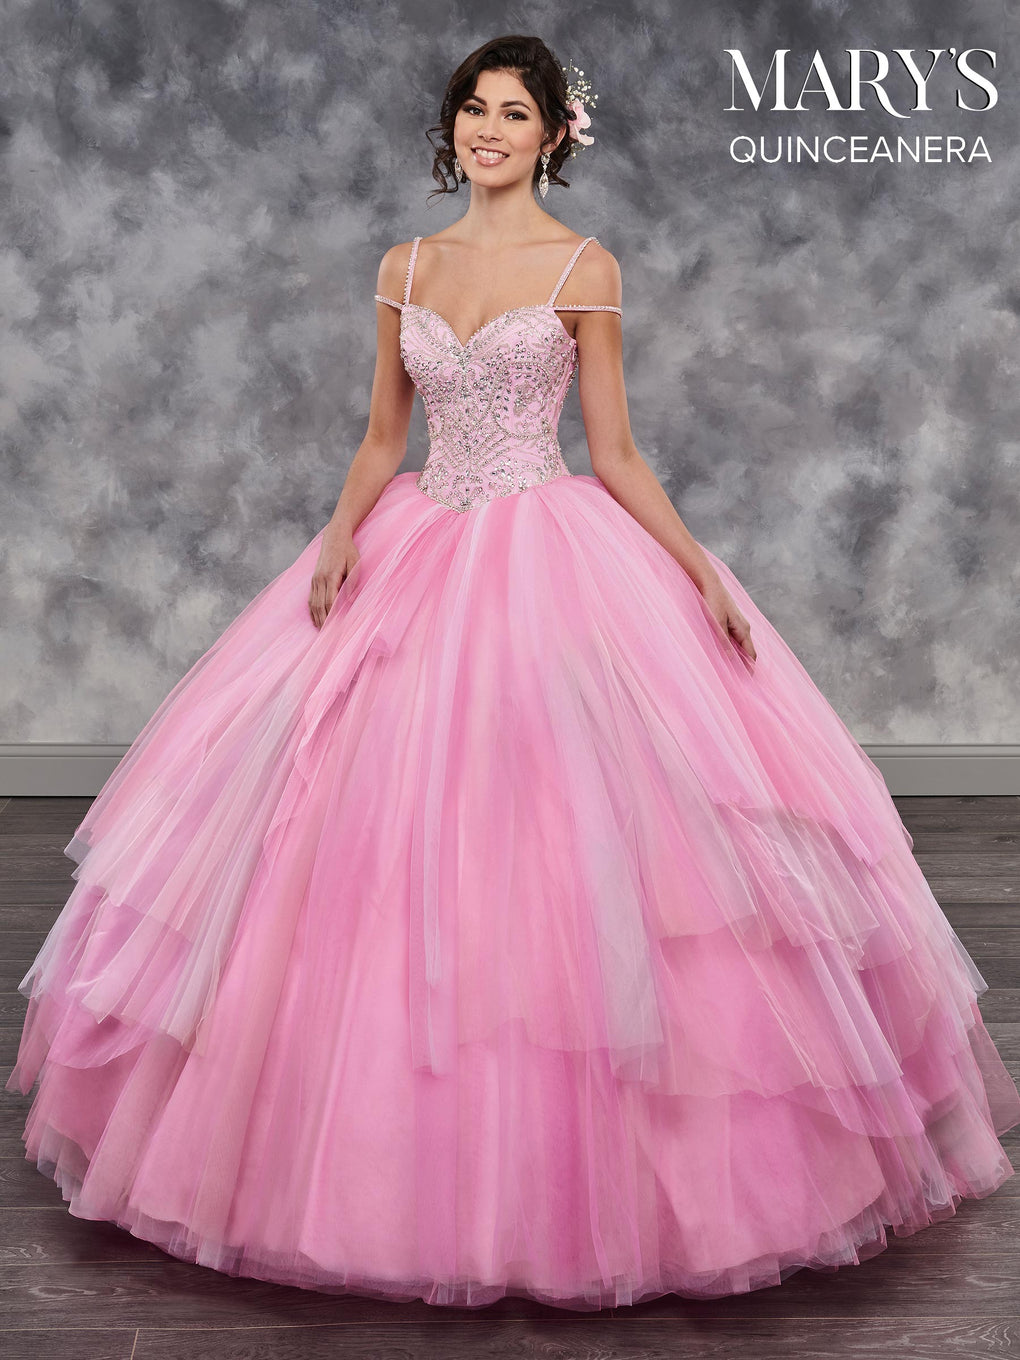 Marys Quinceanera Dresses in Cotton Candy, Rose Petal, or White Color